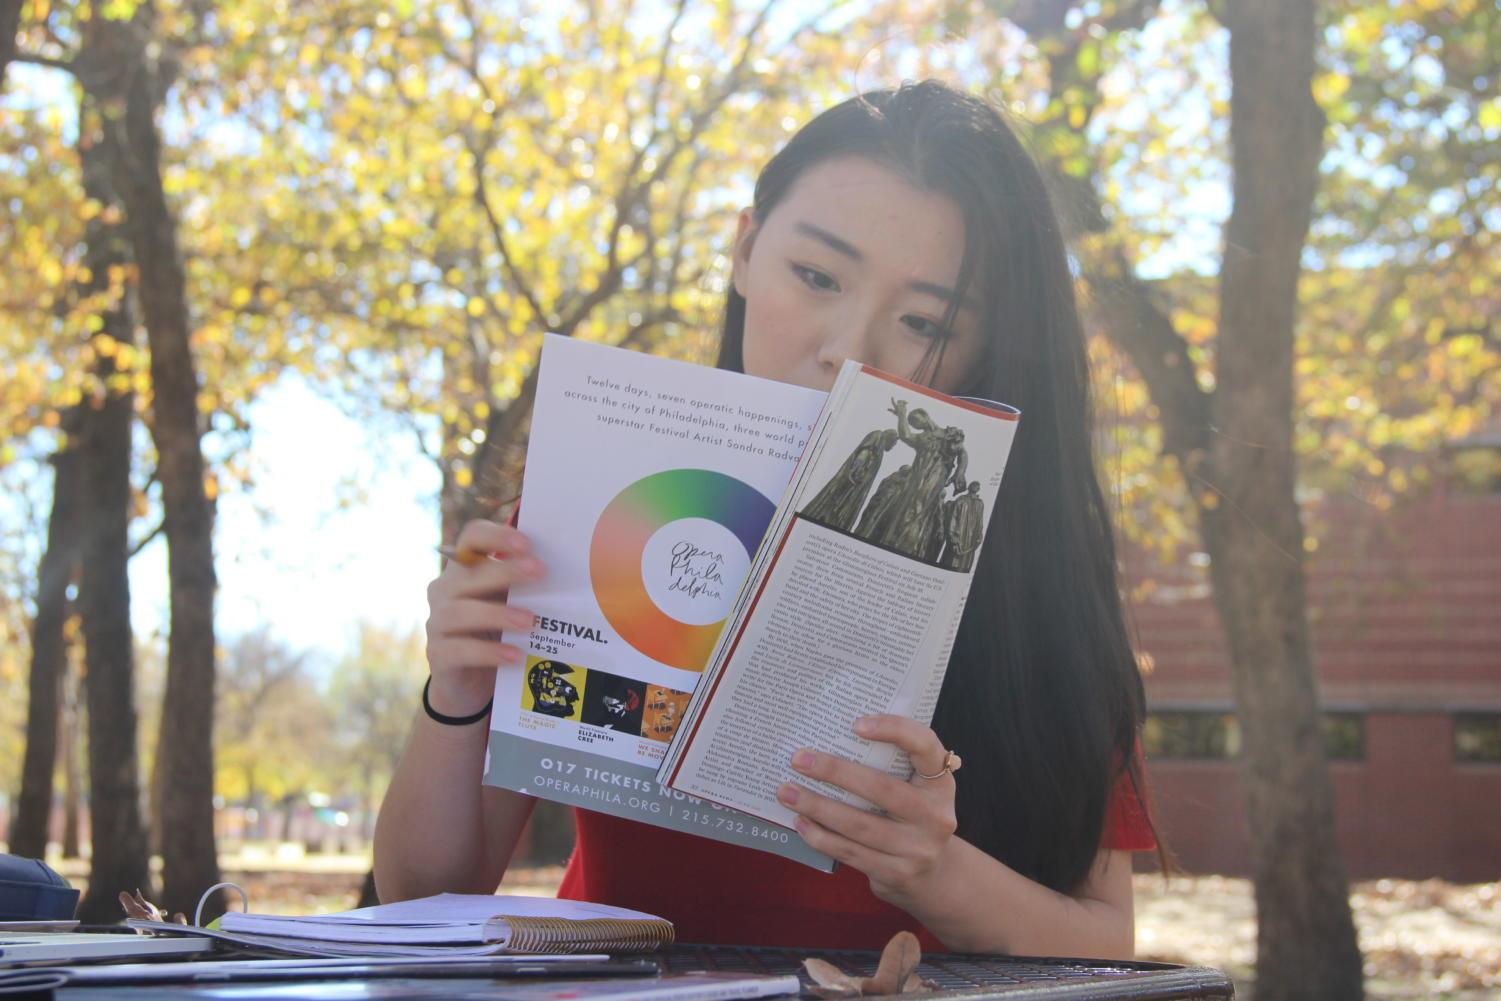 In an effort to focus her various creative passions, Coppell High School junior Kelly Wei founded Portrait Publication, an upcoming fine arts magazine that will feature student talent and submitted work. The first issue is expected to be released in March.